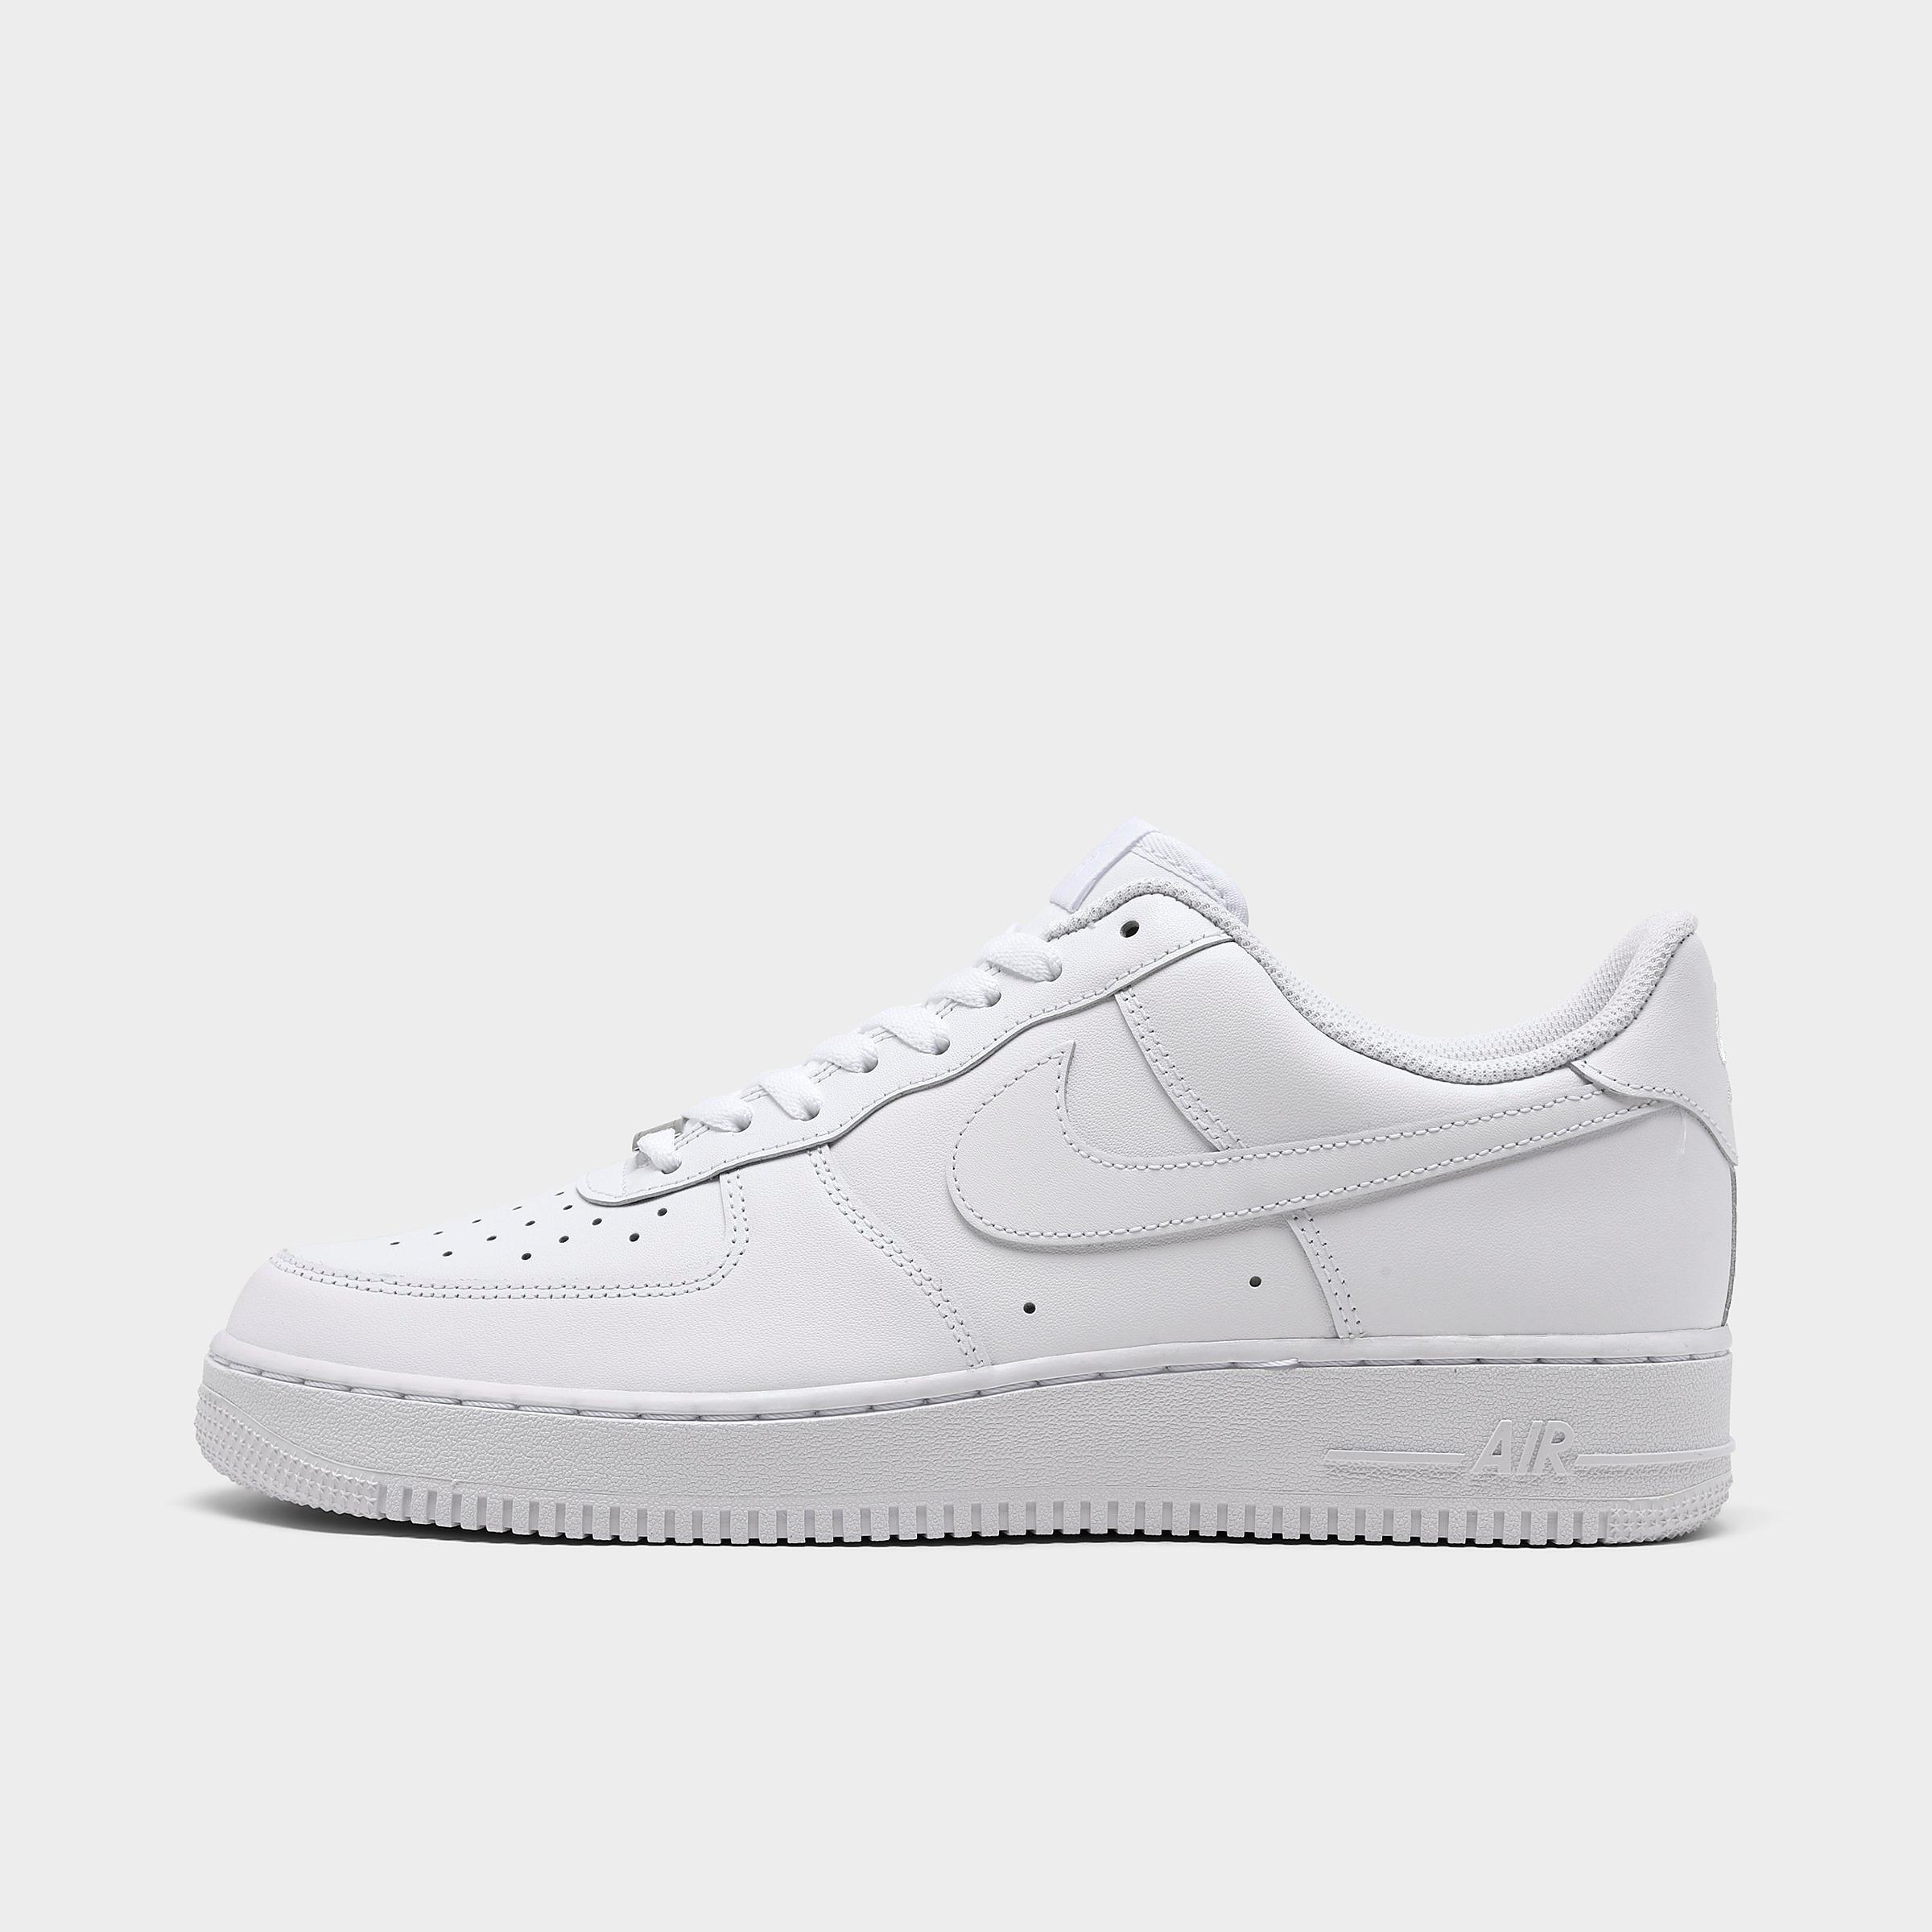 Men's Nike Air Force 1 Low Casual Shoes| Finish Line